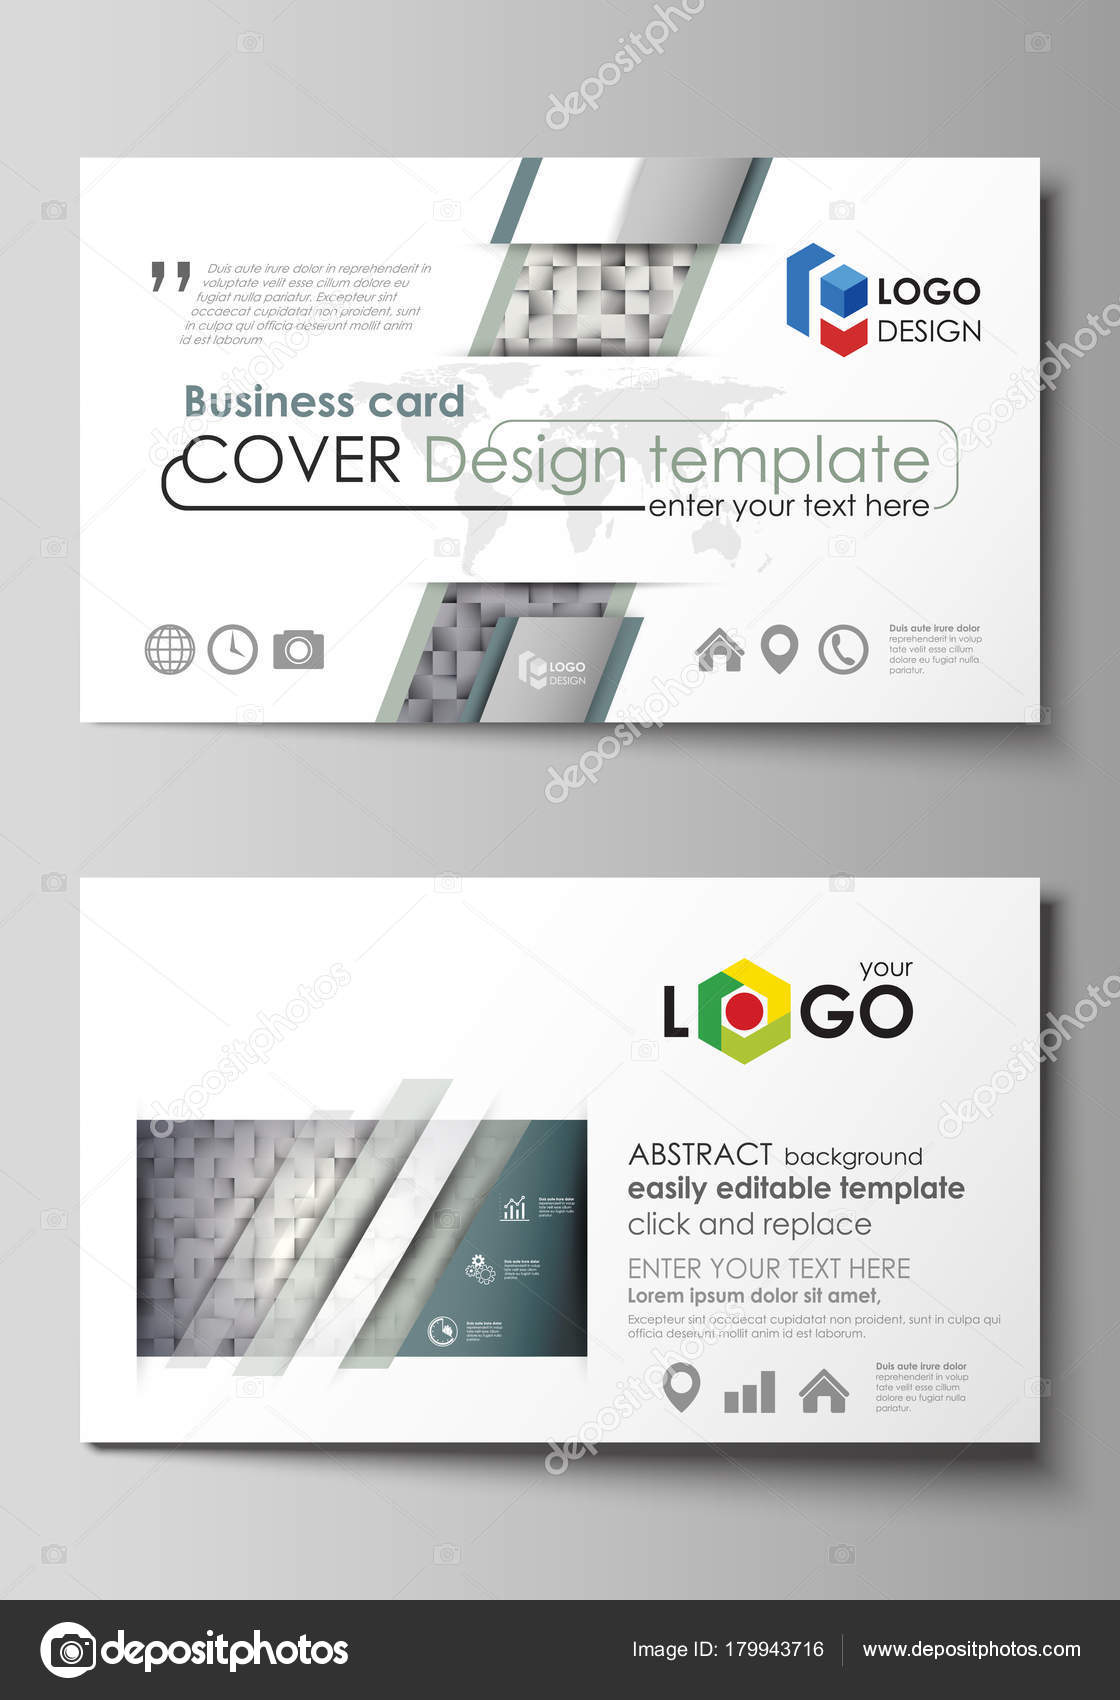 Business card templates easy editable layout abstract vector business card templates easy editable layout abstract vector design template pattern made from squares gray background in geometrical style cheaphphosting Choice Image